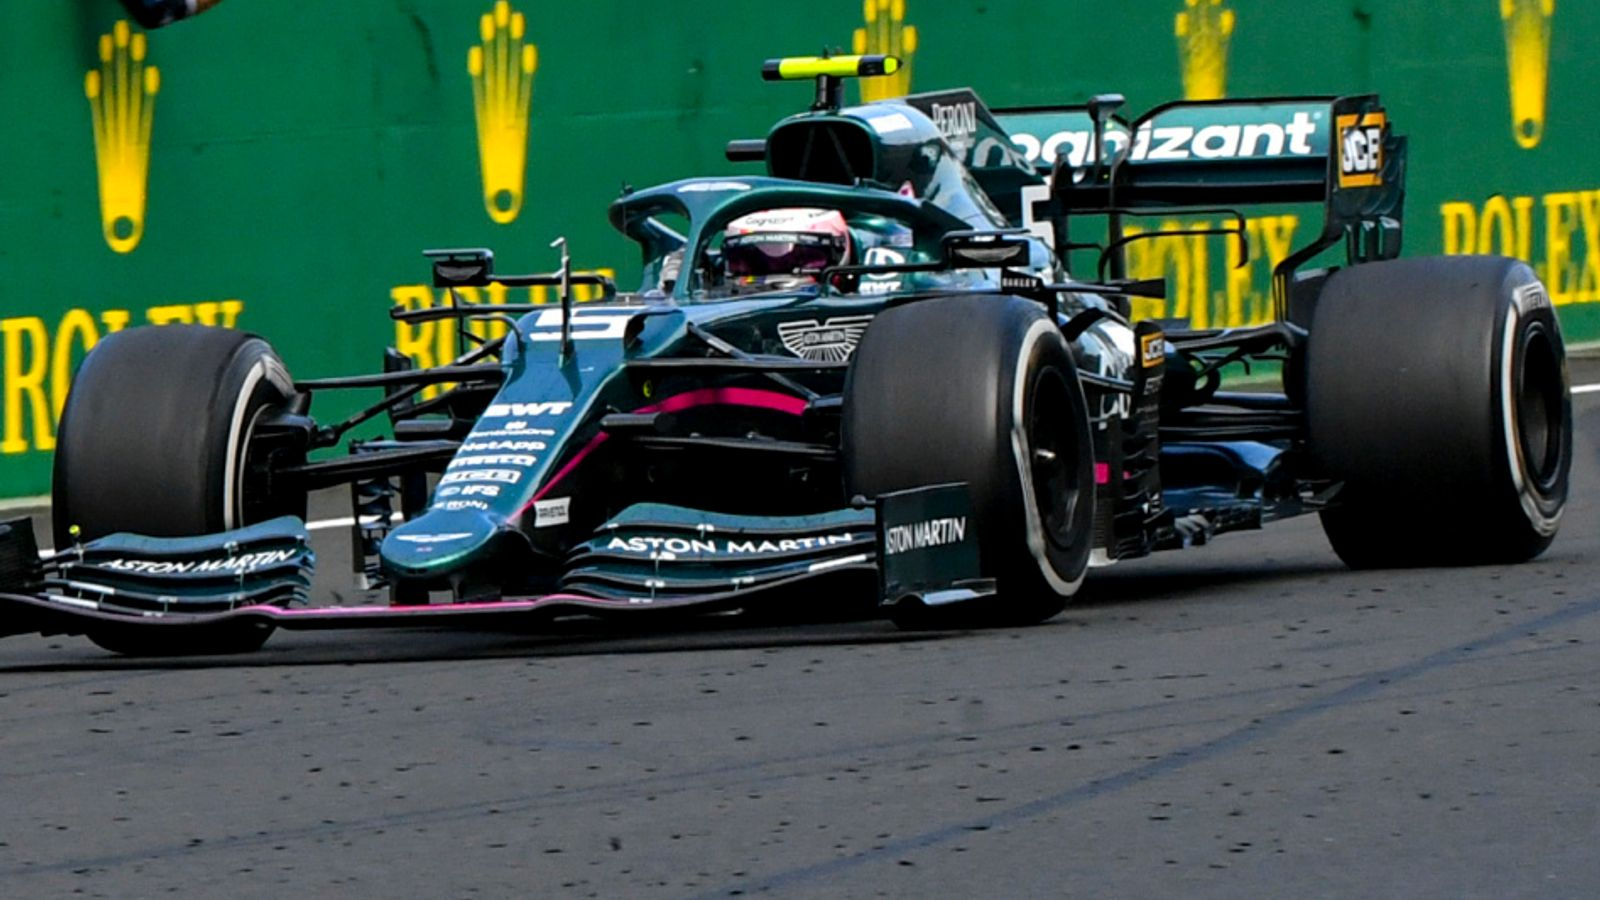 Sebastian Vettel's appeal against the Hungarian Grand Prix fuel disqualification has been withdrawn by Aston Martin.